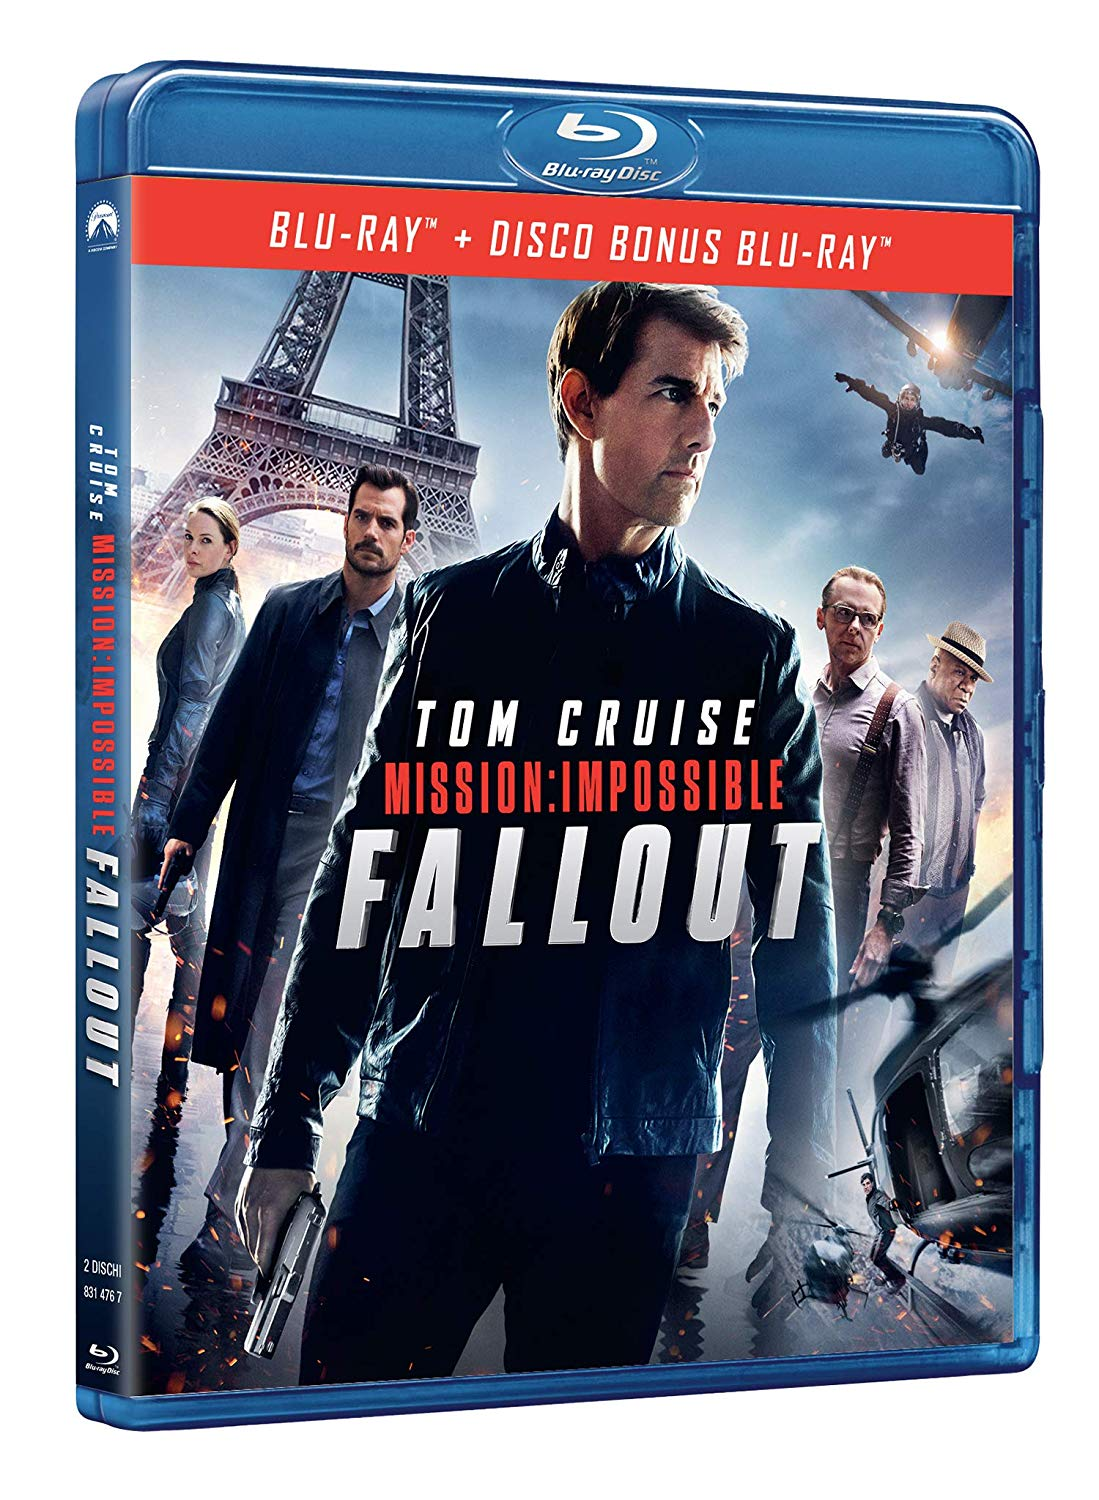 MISSION: IMPOSSIBLE - FALLOUT - BLU RAY